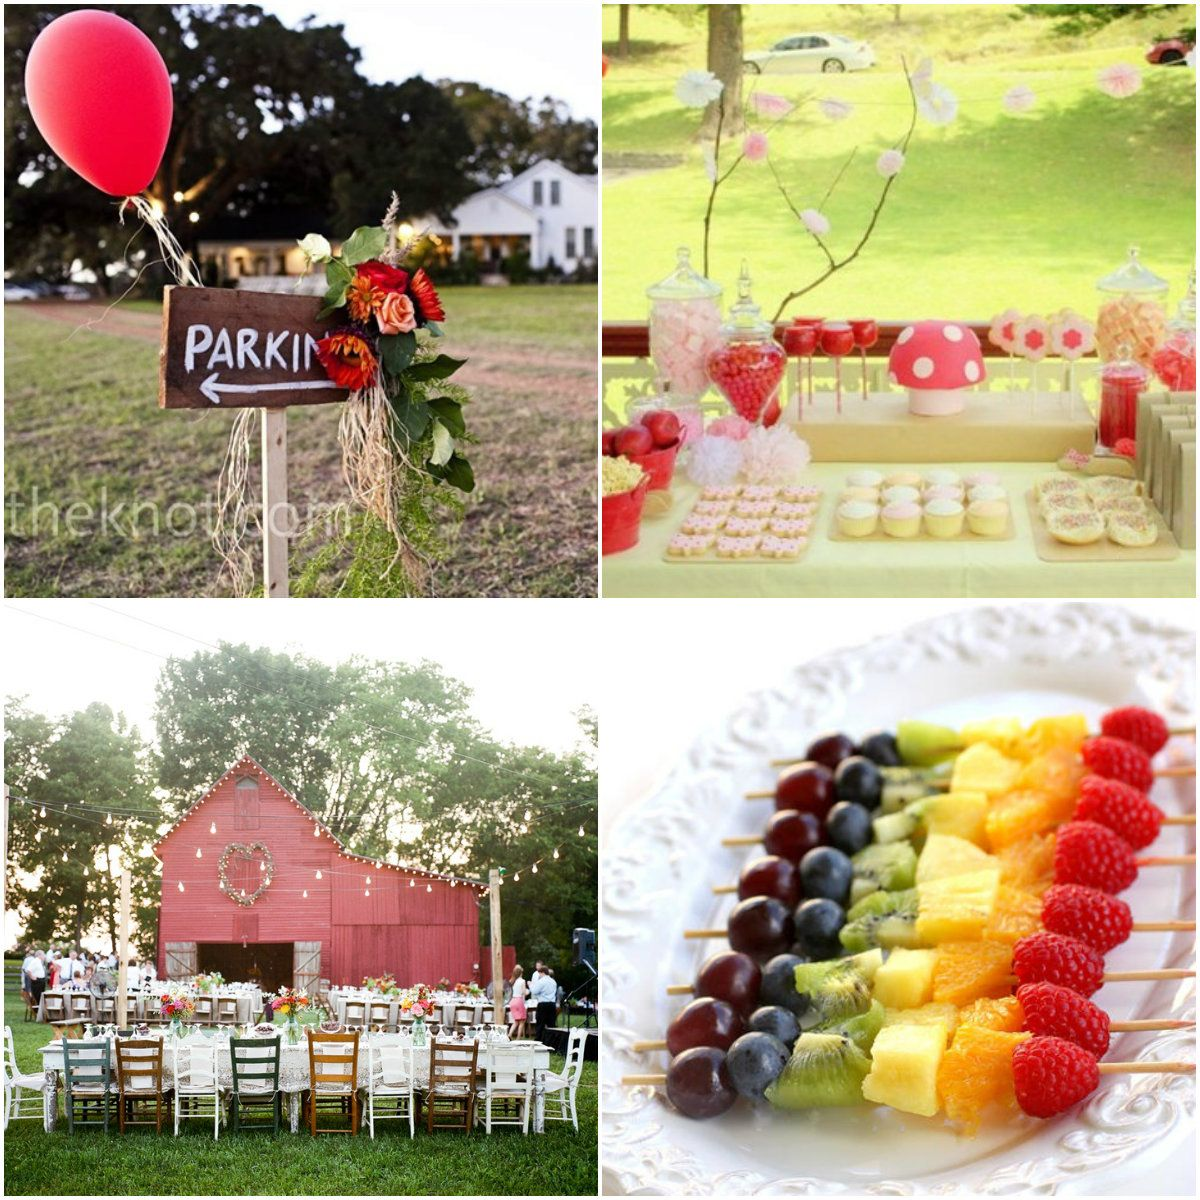 18th birthday garden party decorations | Party Ideas ...